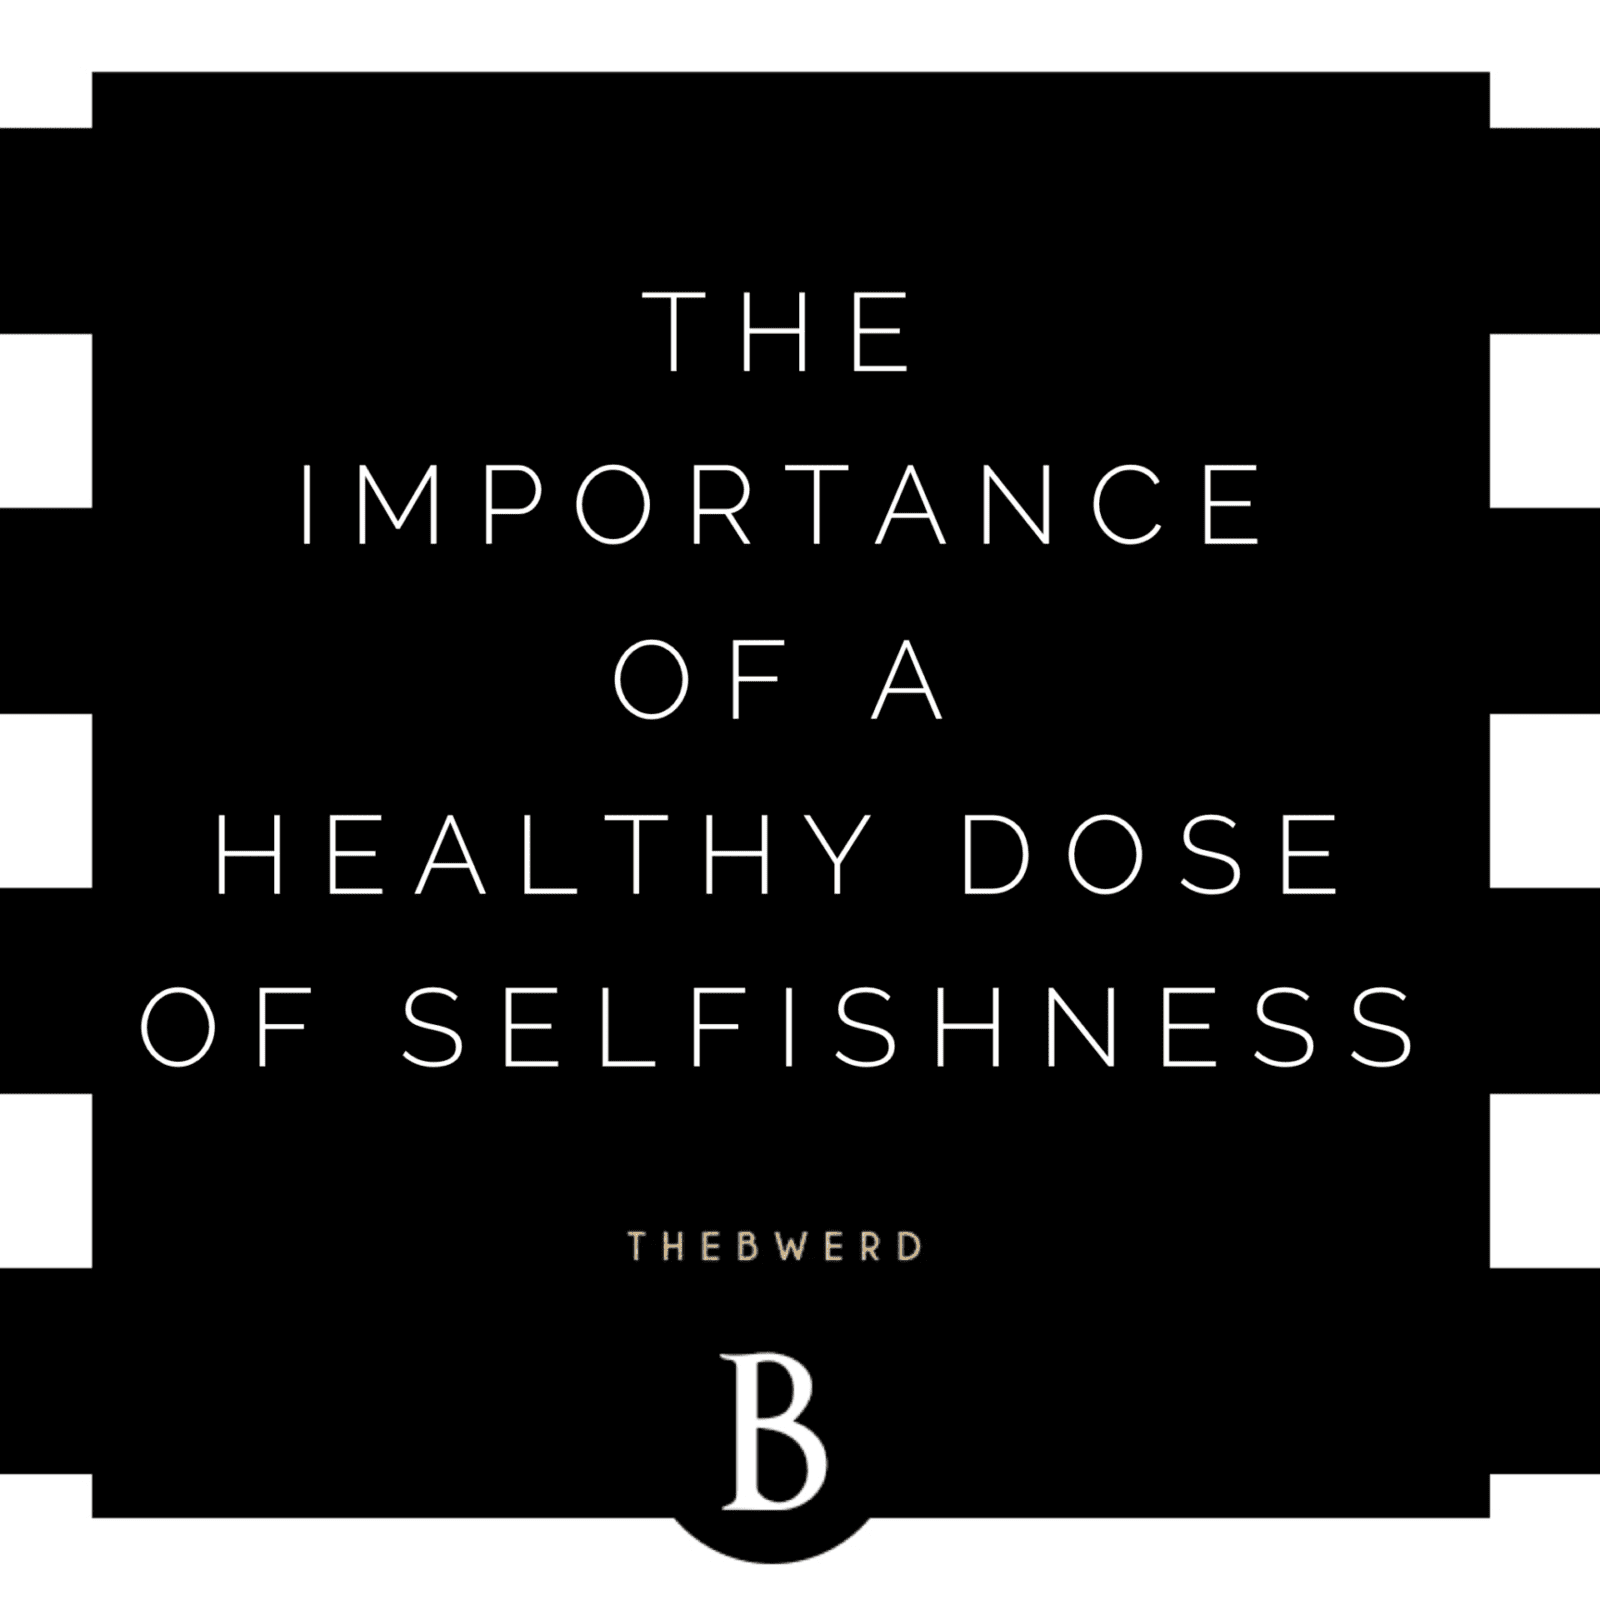 The Importance of a Healthy Dose of Selfishness | The B Werd